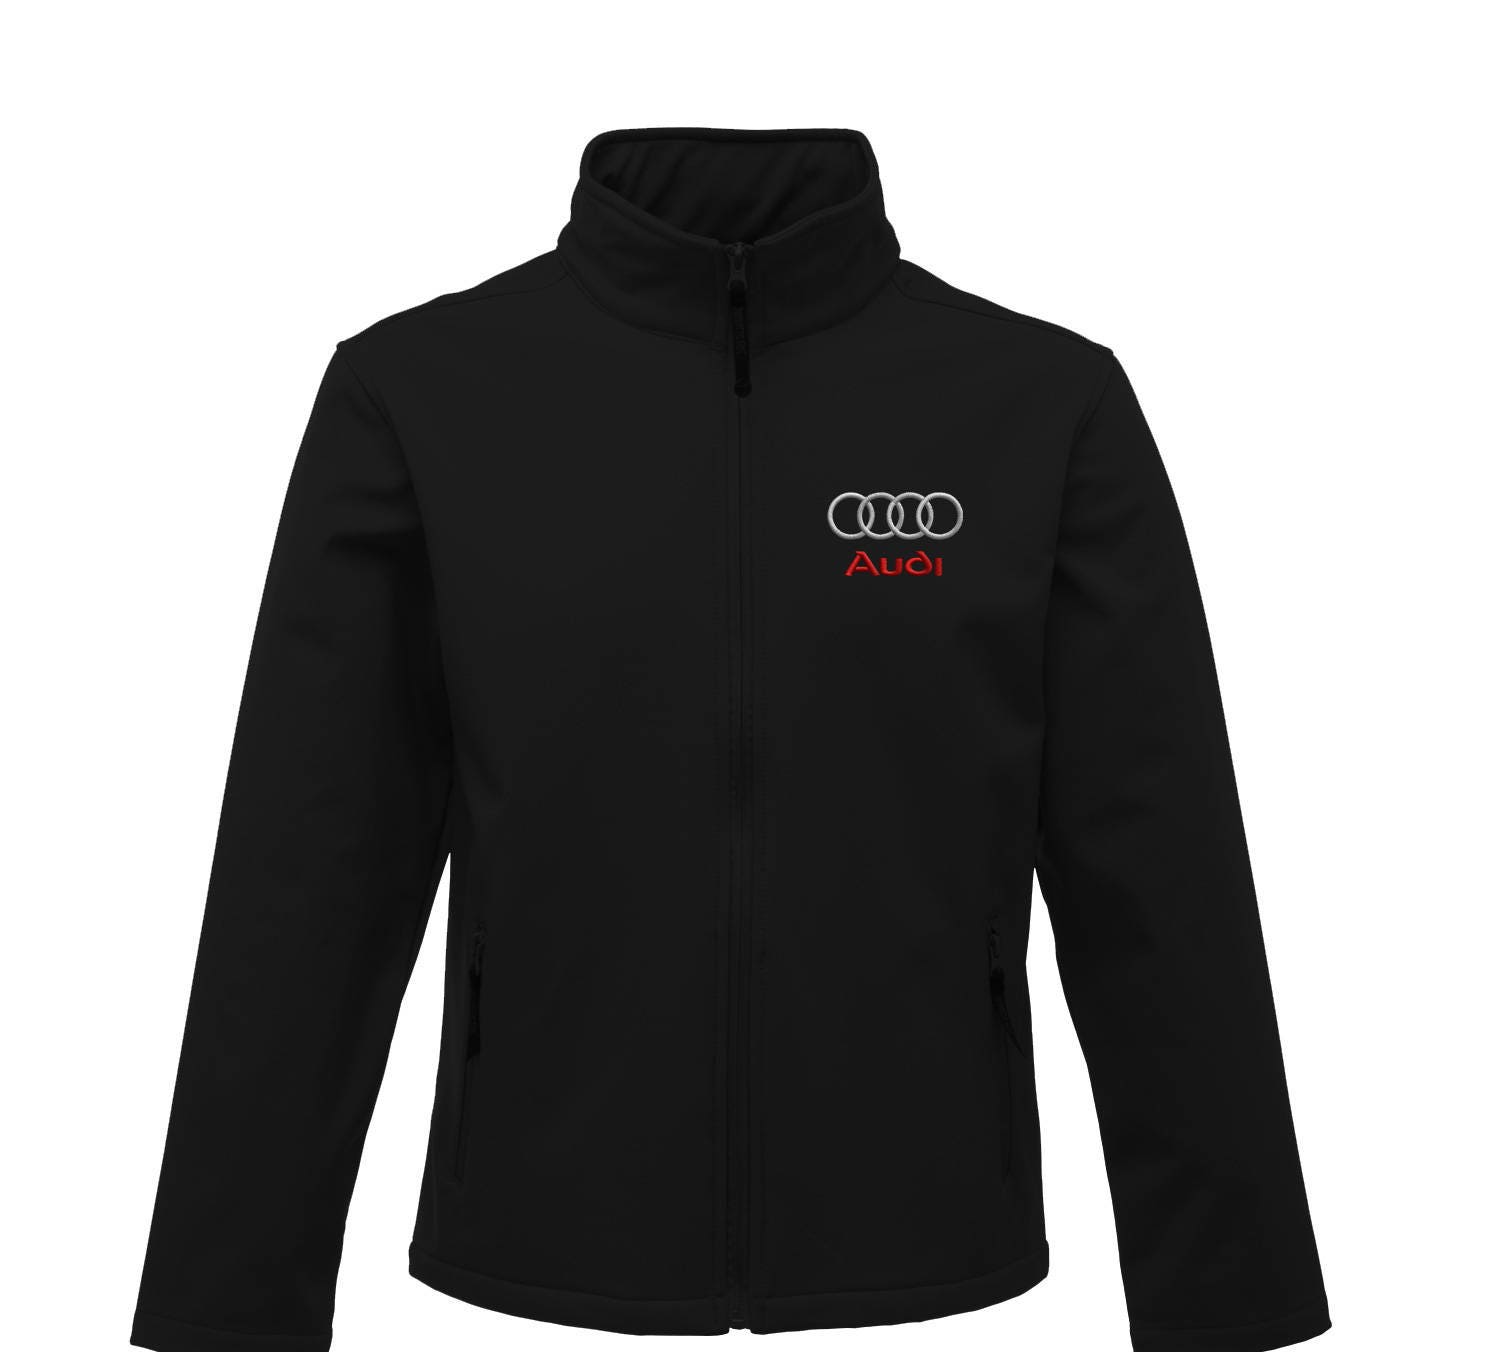 Black DAF Embroided Core Jacket StormDri Fleece Lined S Line Lorry Trucker Not Scania CNqsc